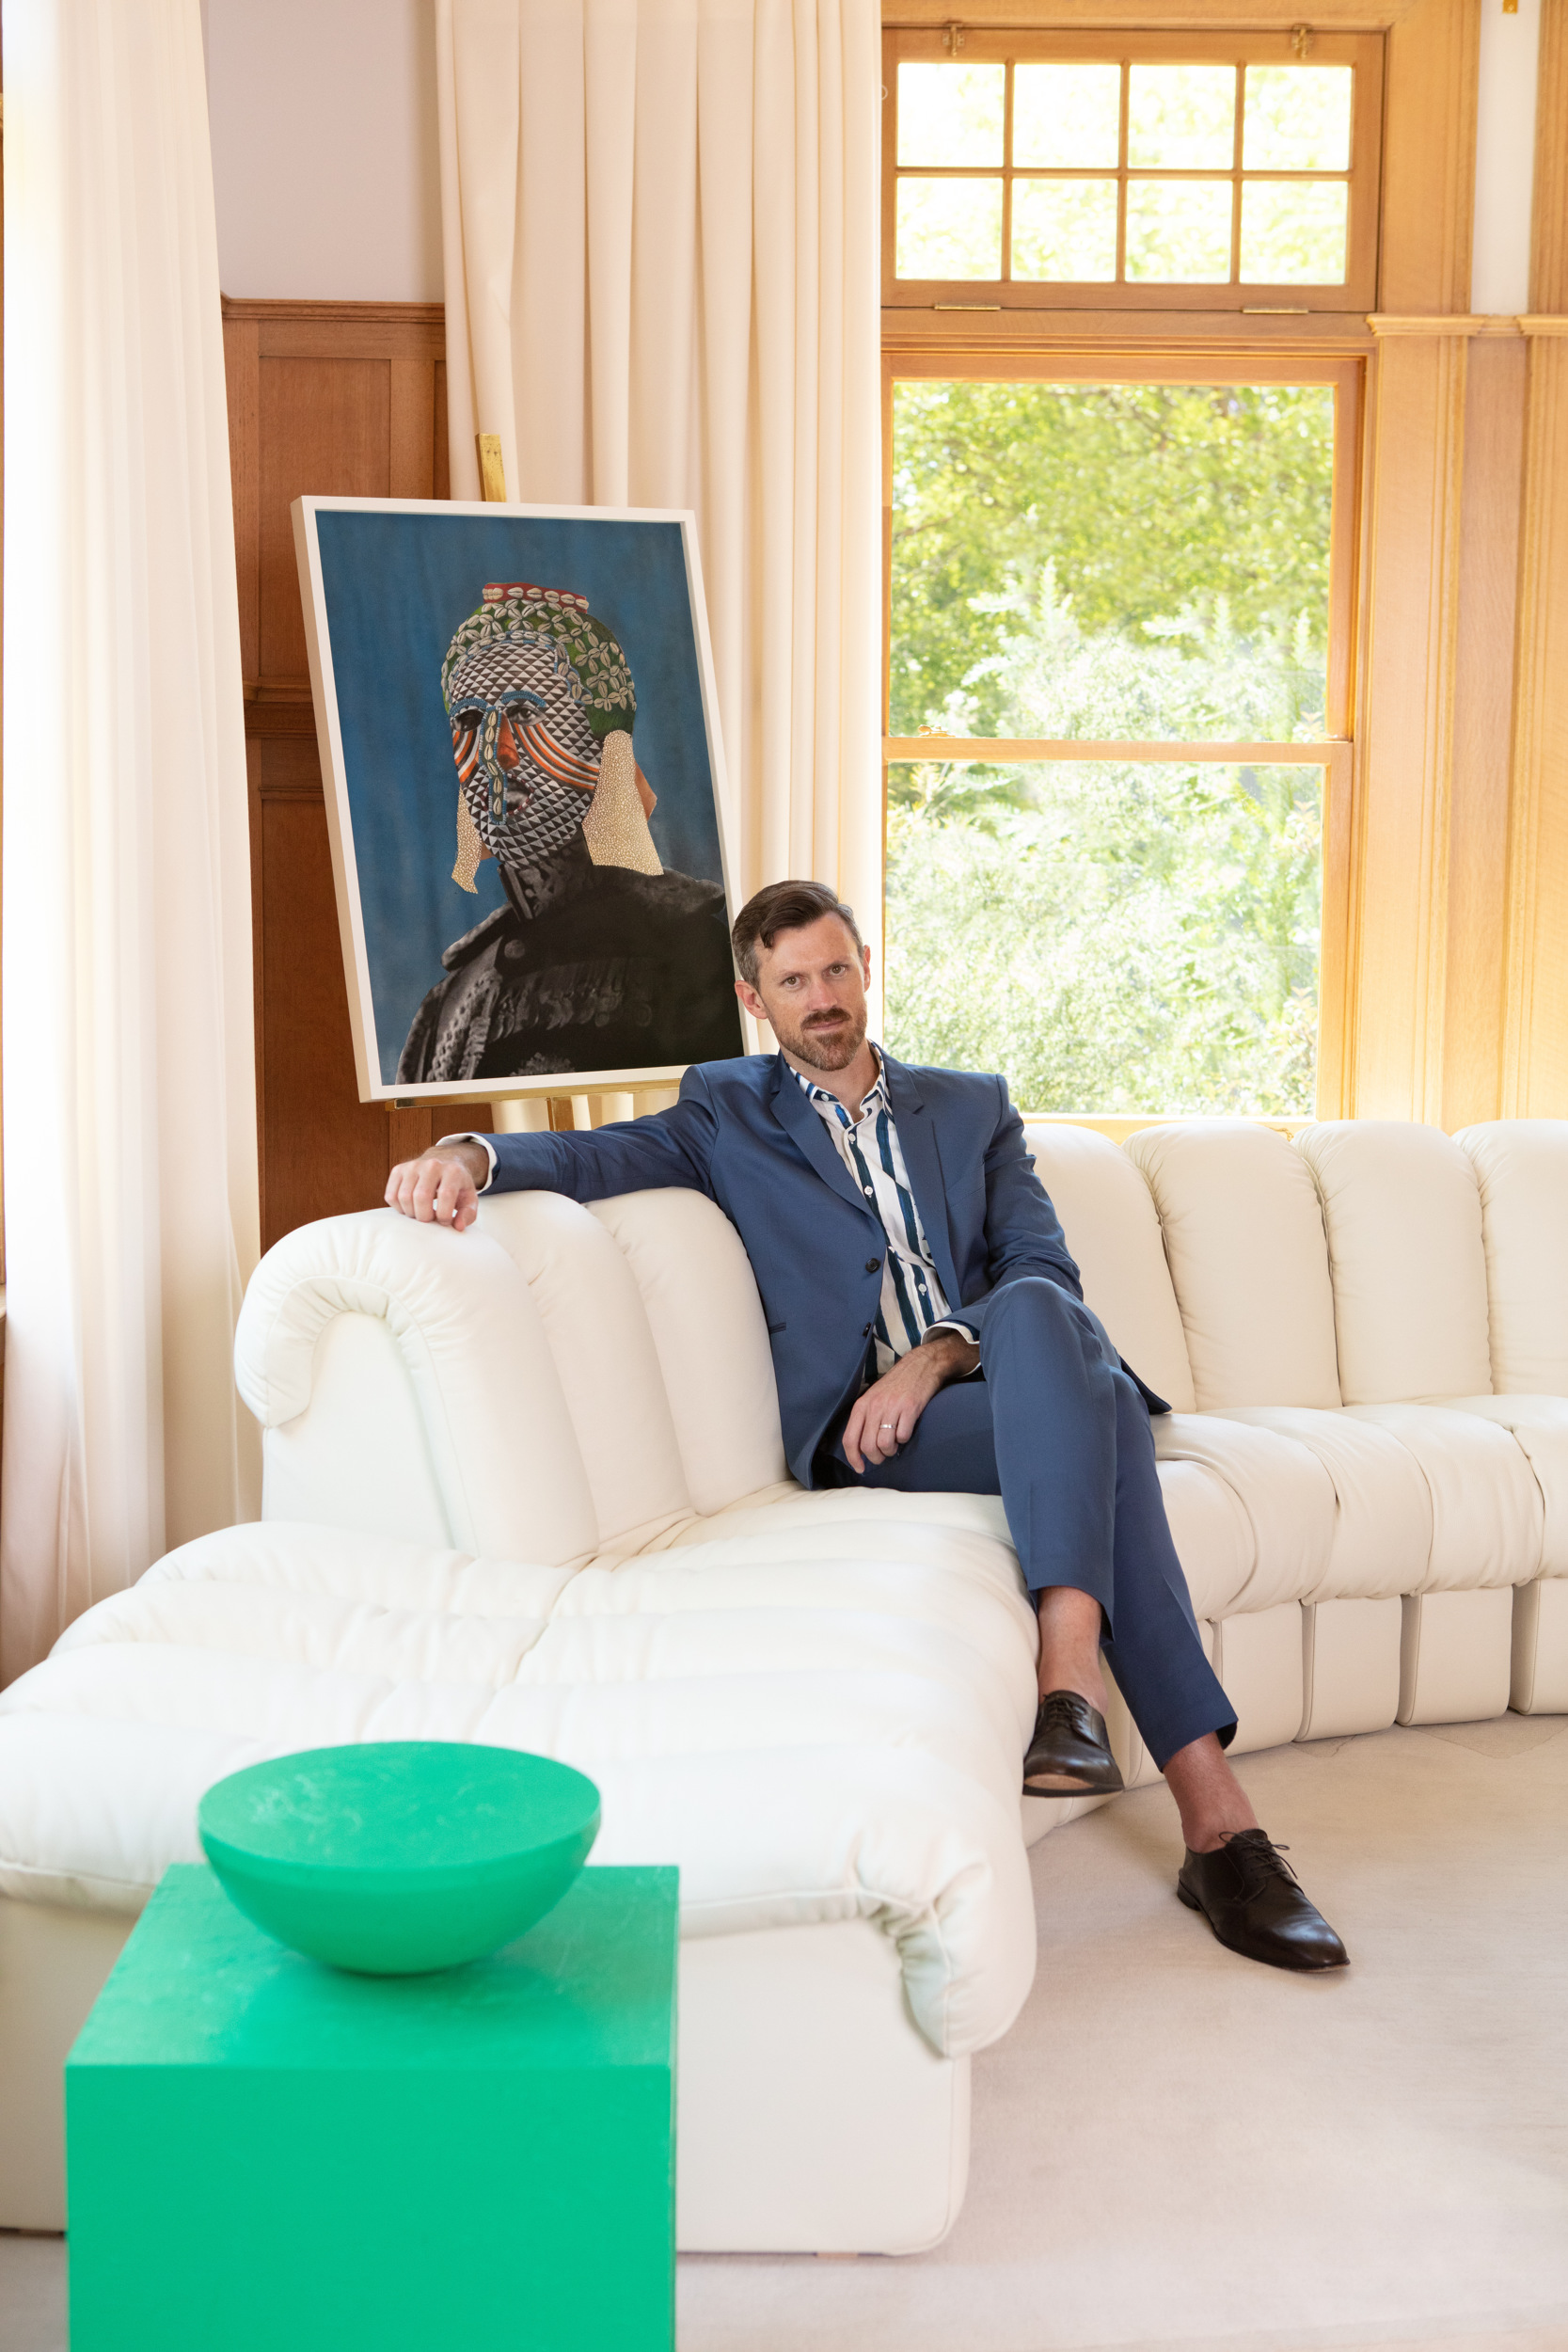 chet callahan in his home on white couch with blue portrait painting and window behind him